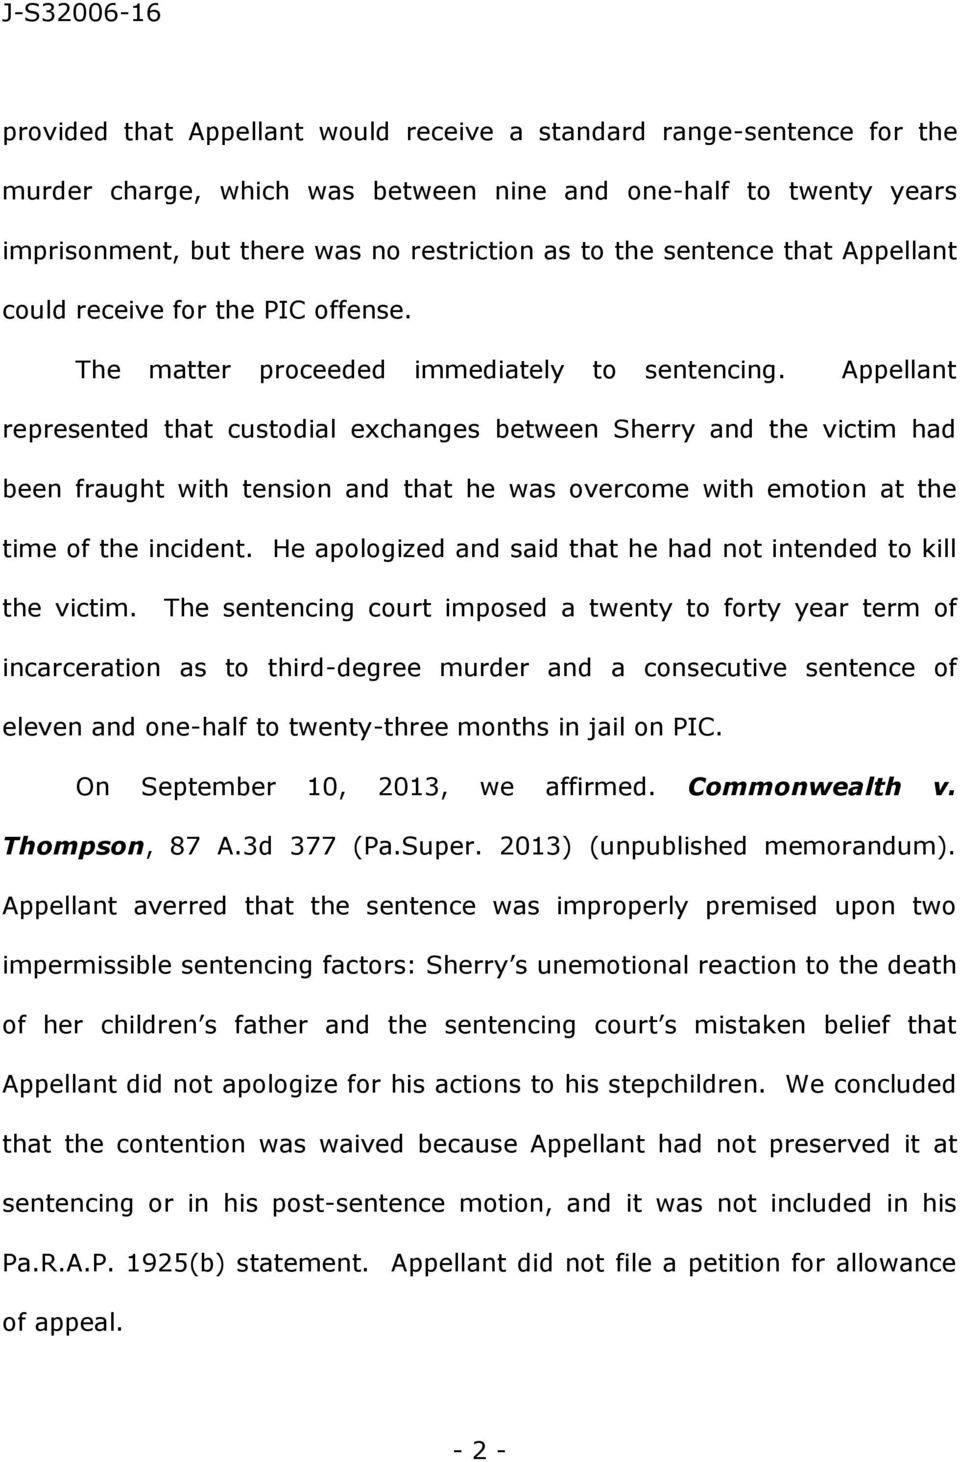 Appellant represented that custodial exchanges between Sherry and the victim had been fraught with tension and that he was overcome with emotion at the time of the incident.